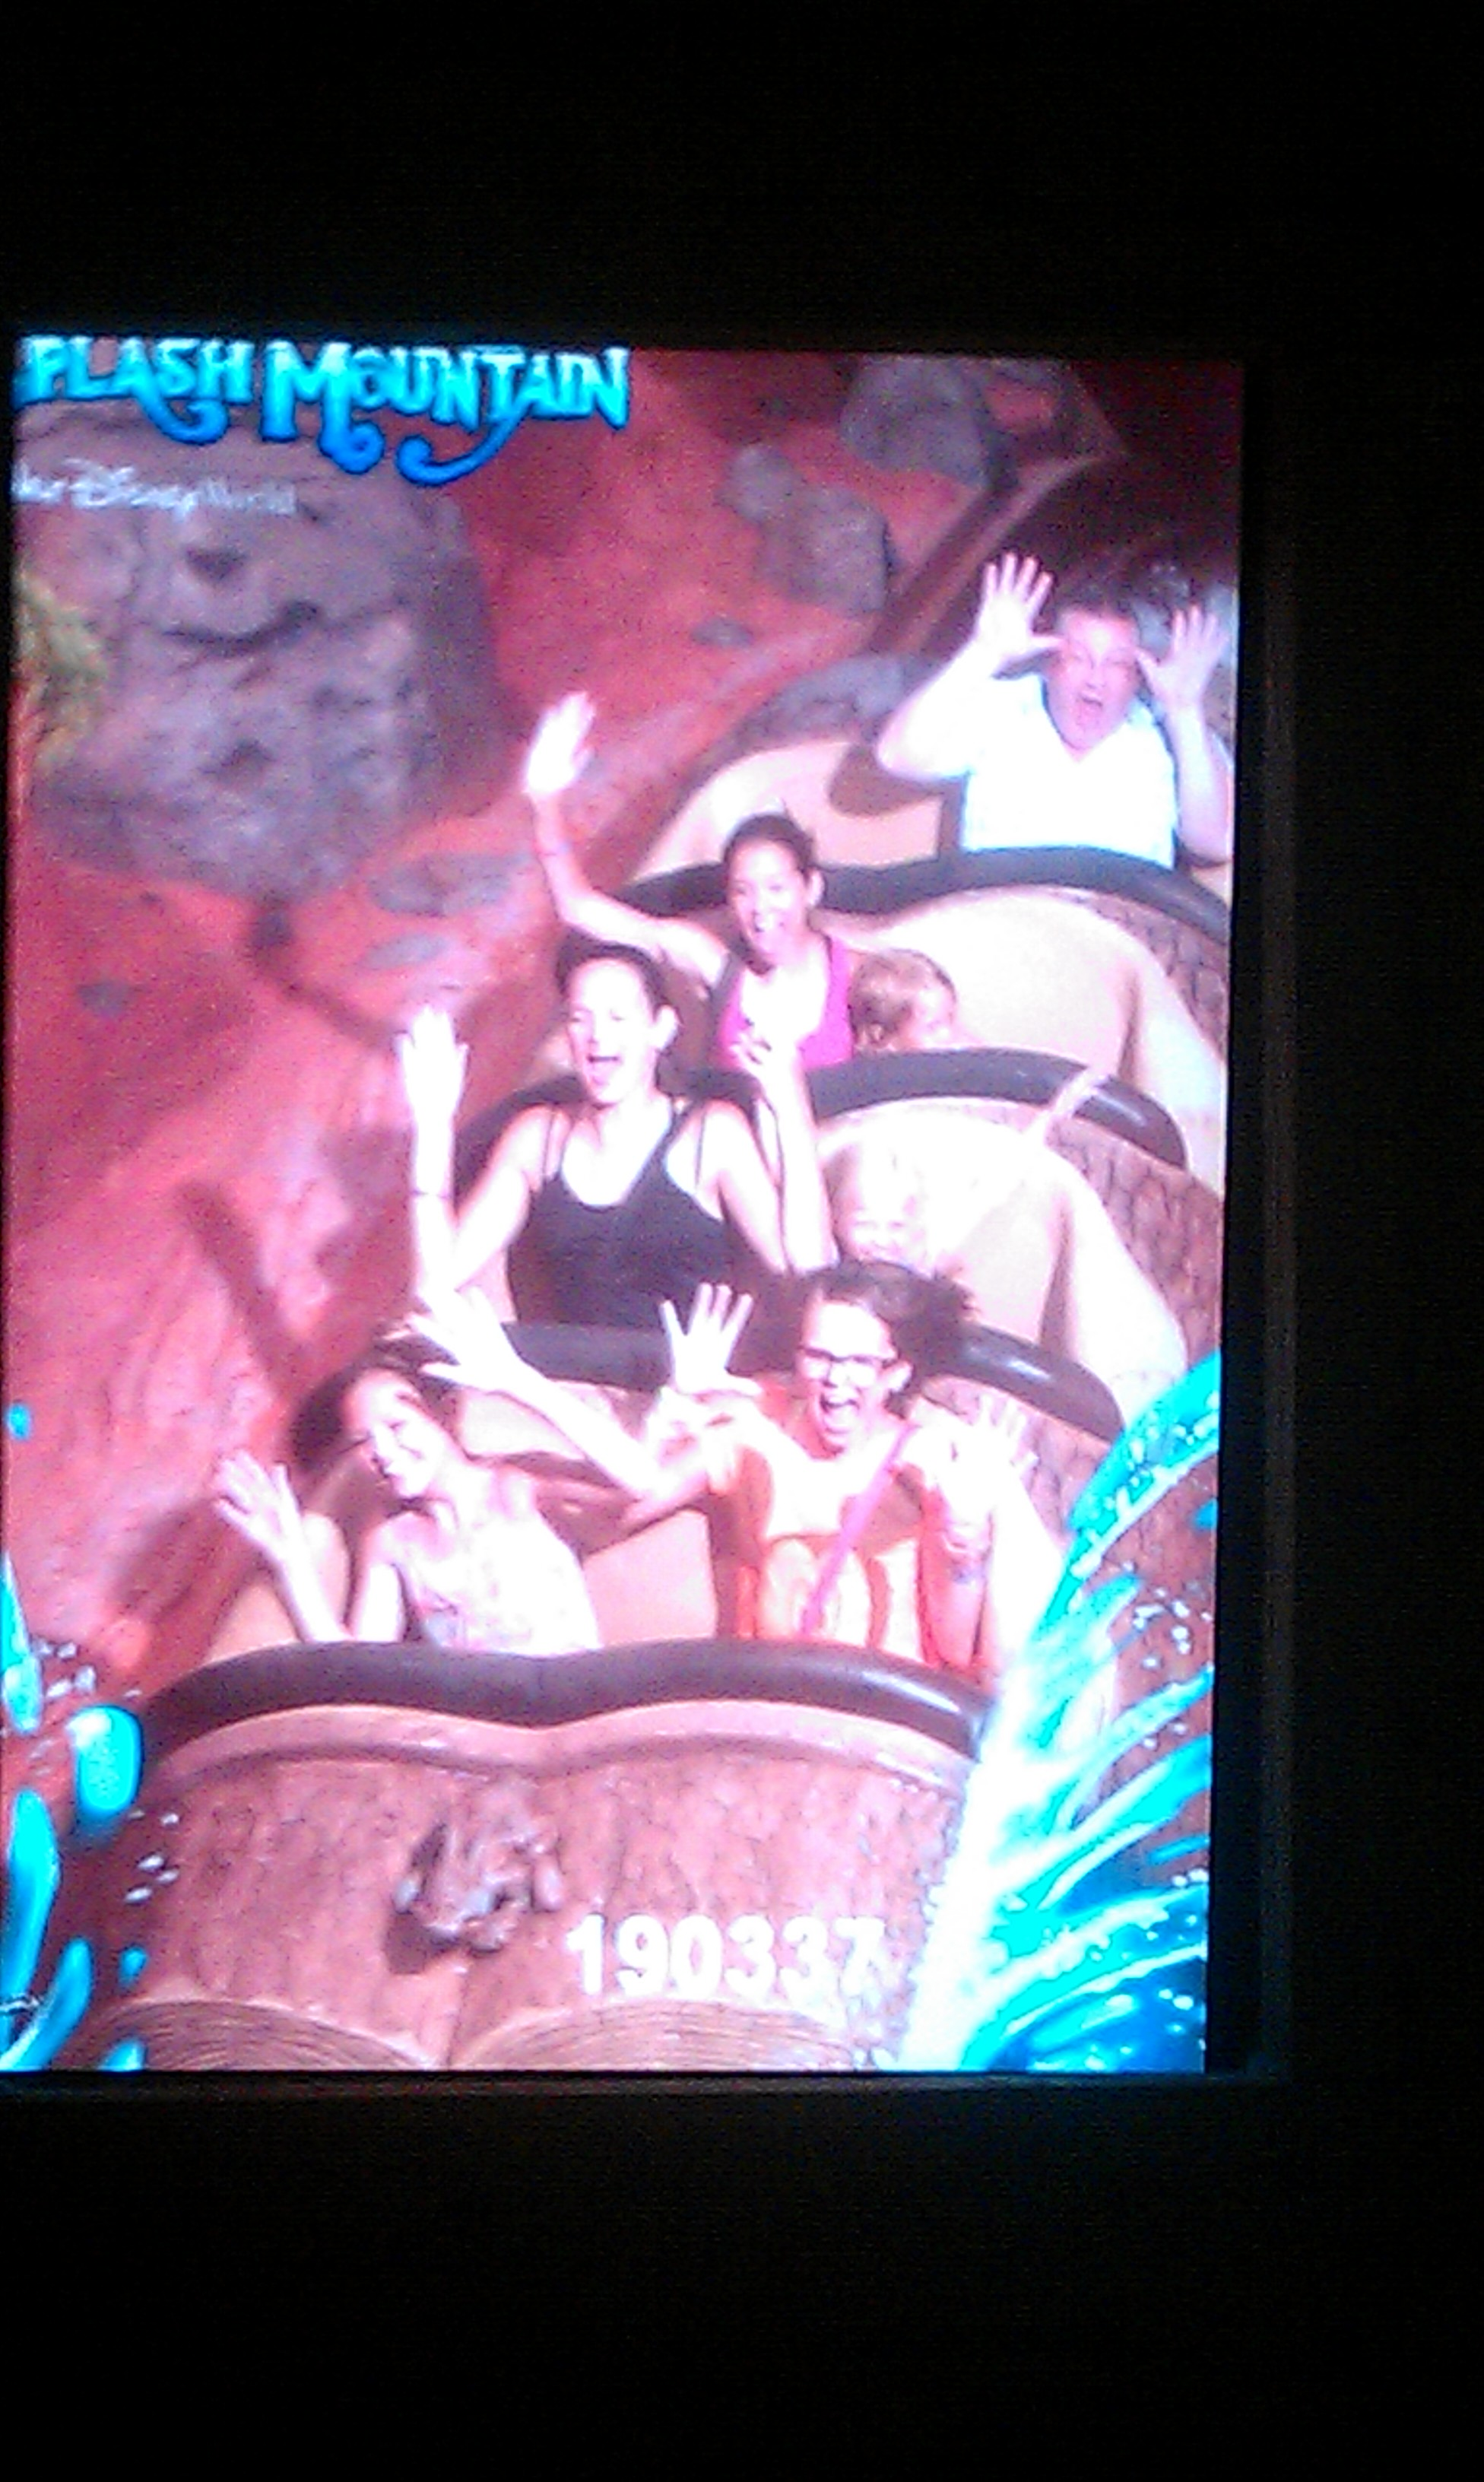 Splash Mountain at Disney World Florida